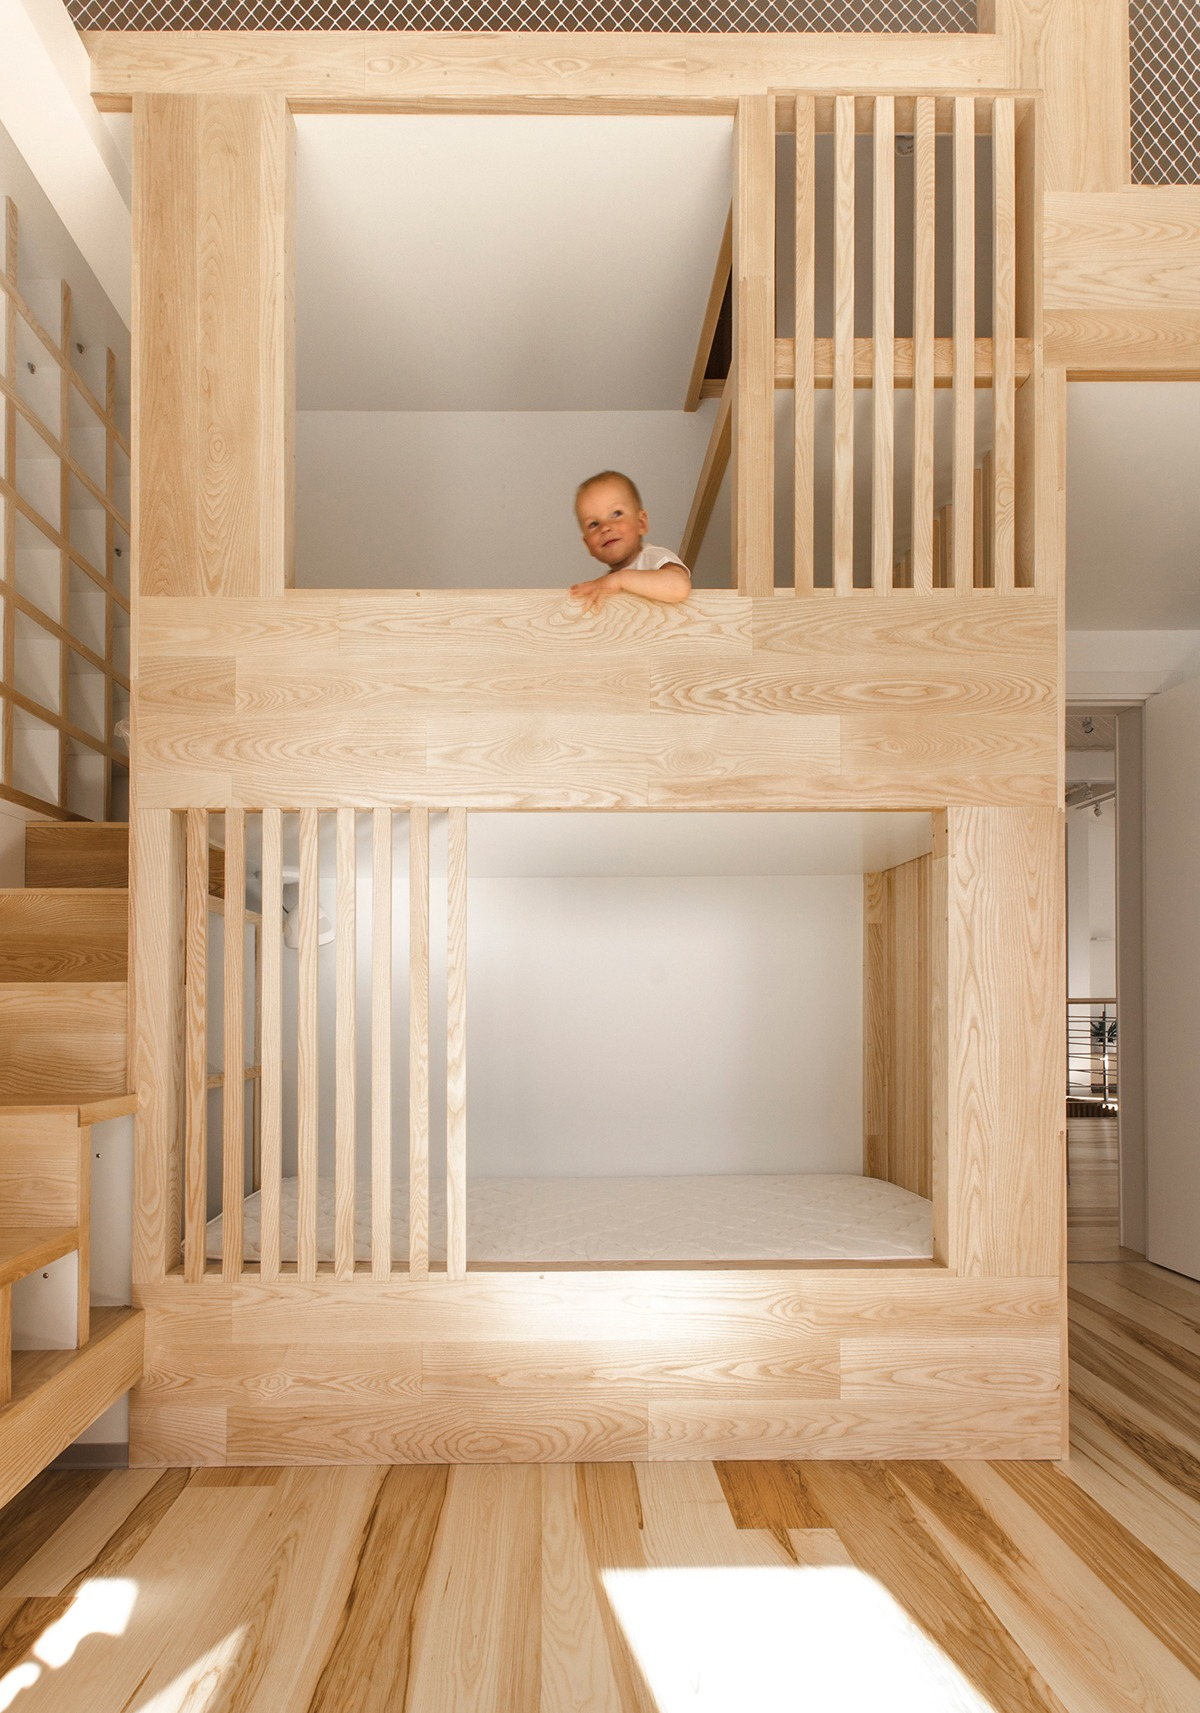 Minimalist Loft Bed Ideas For Kids - A kid friendly apartment renovation by ruetemple architects